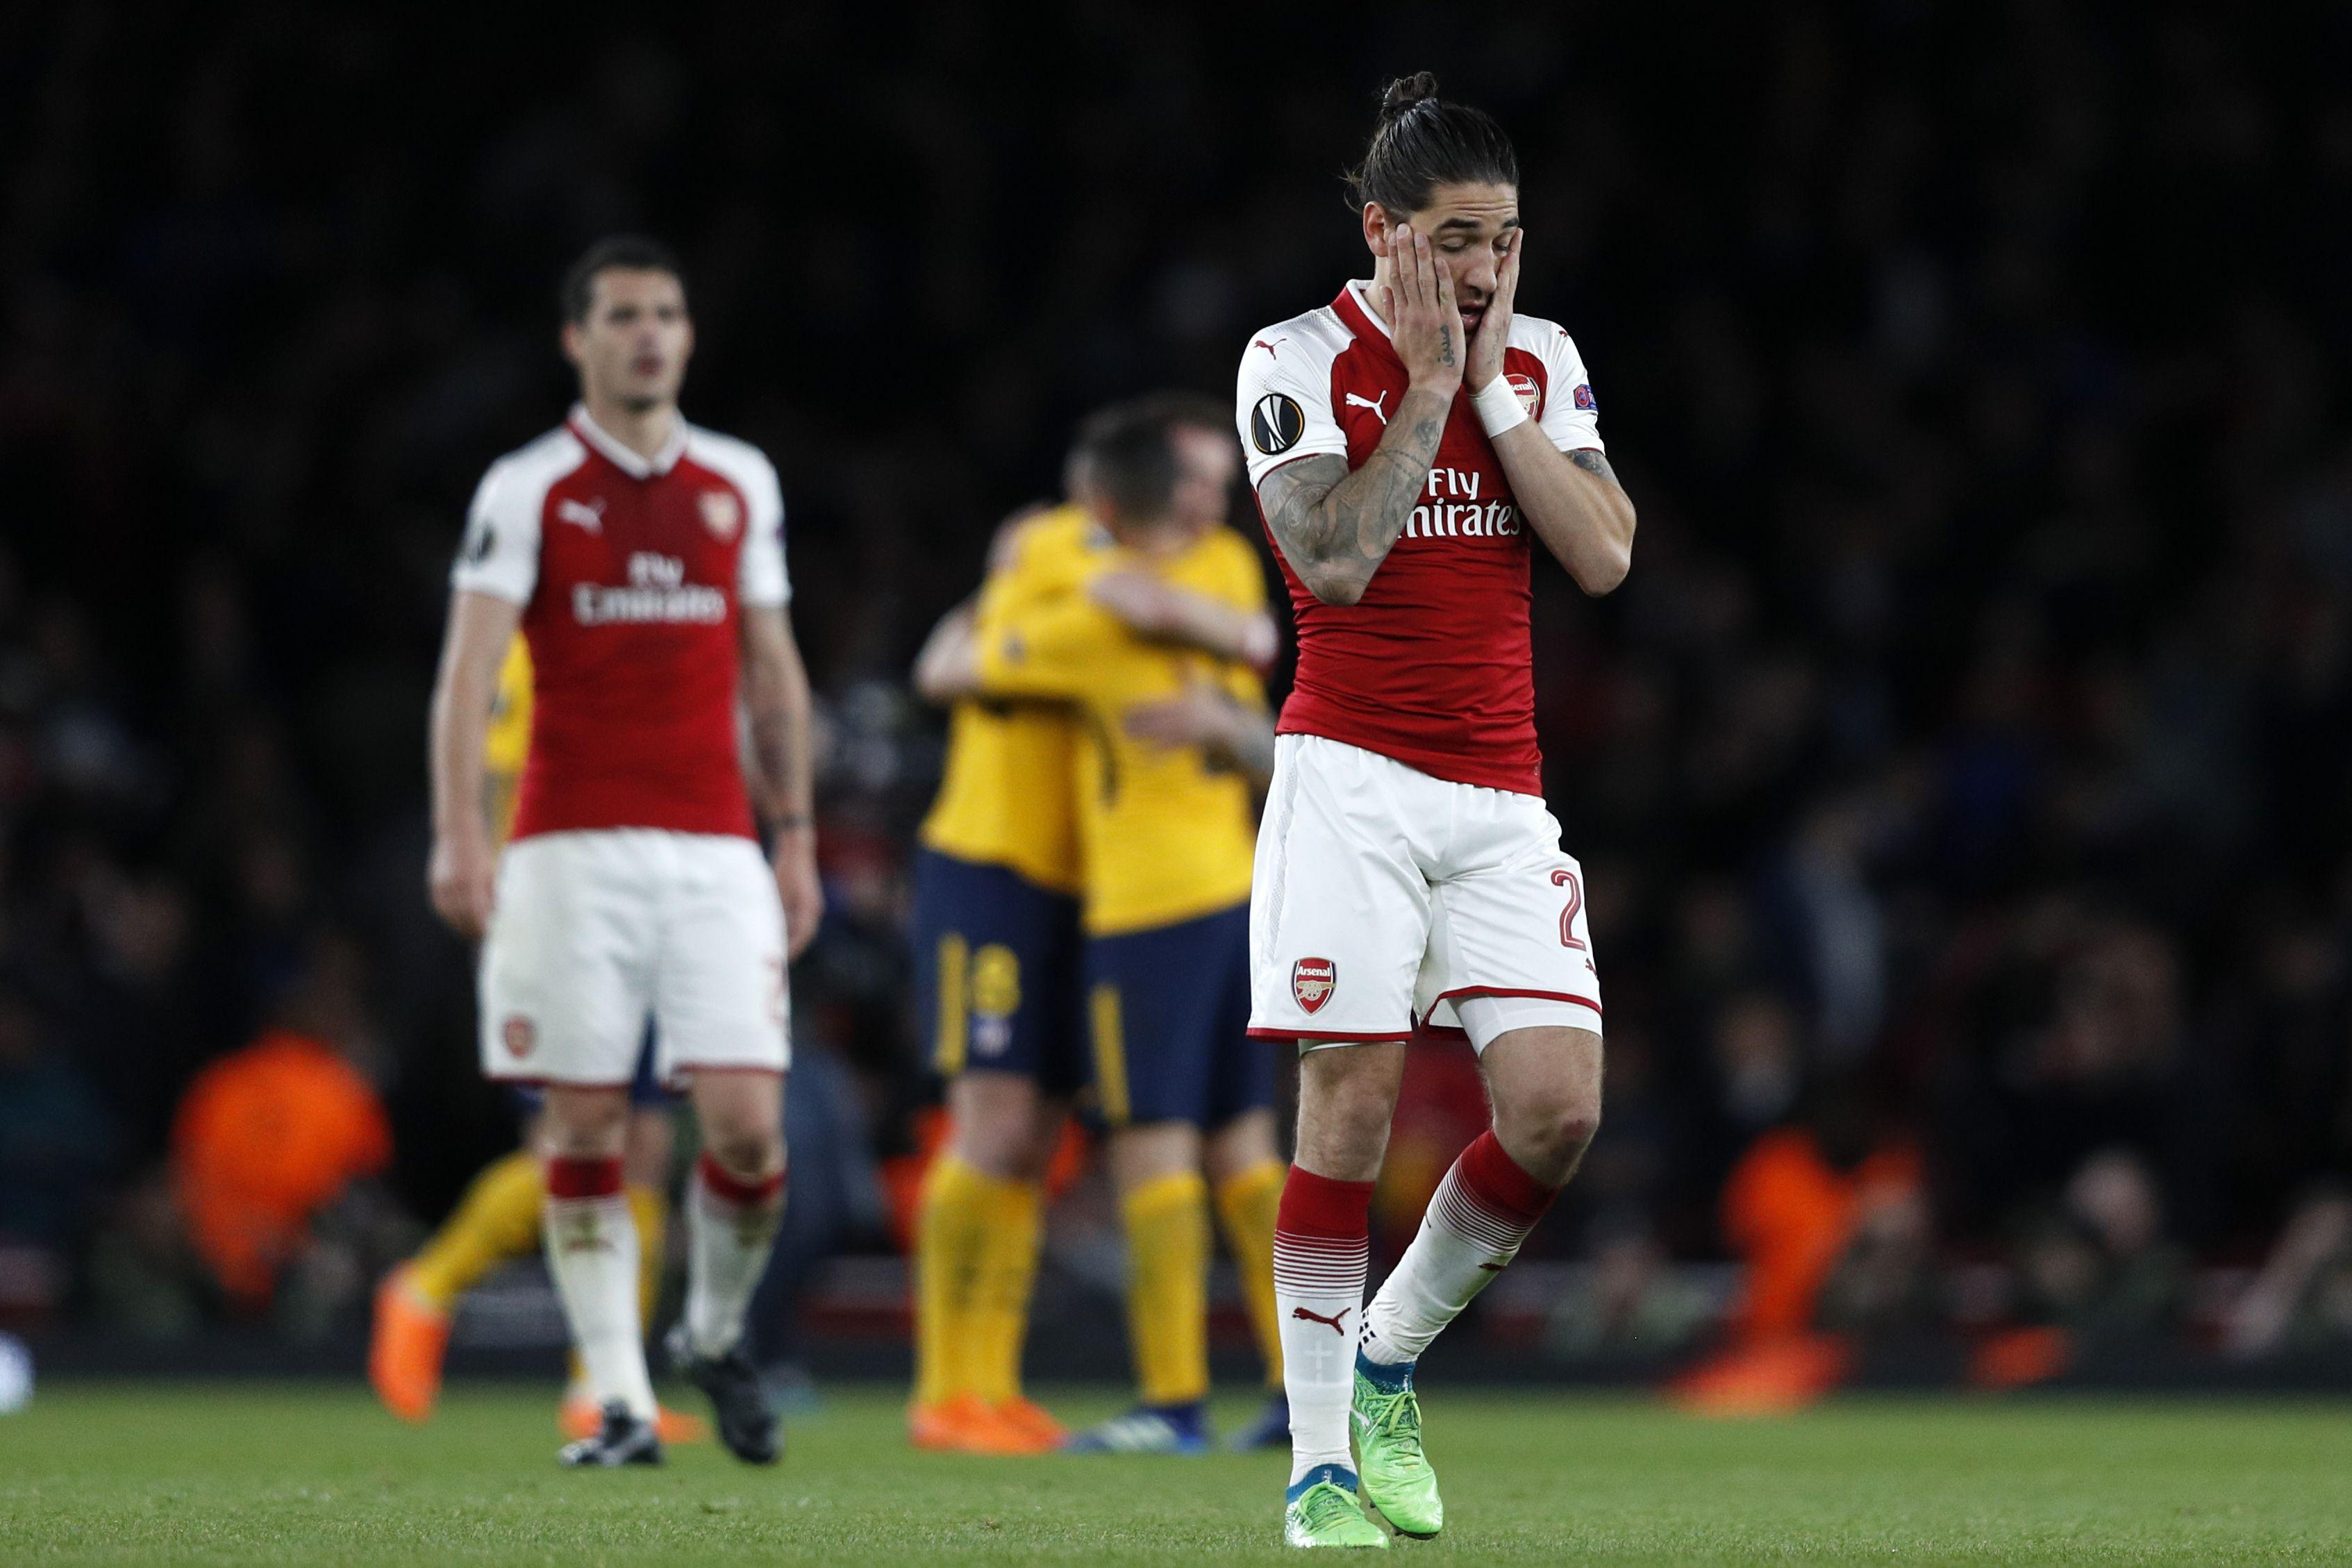 Disappointment, a familiar sight for Arsenal fans